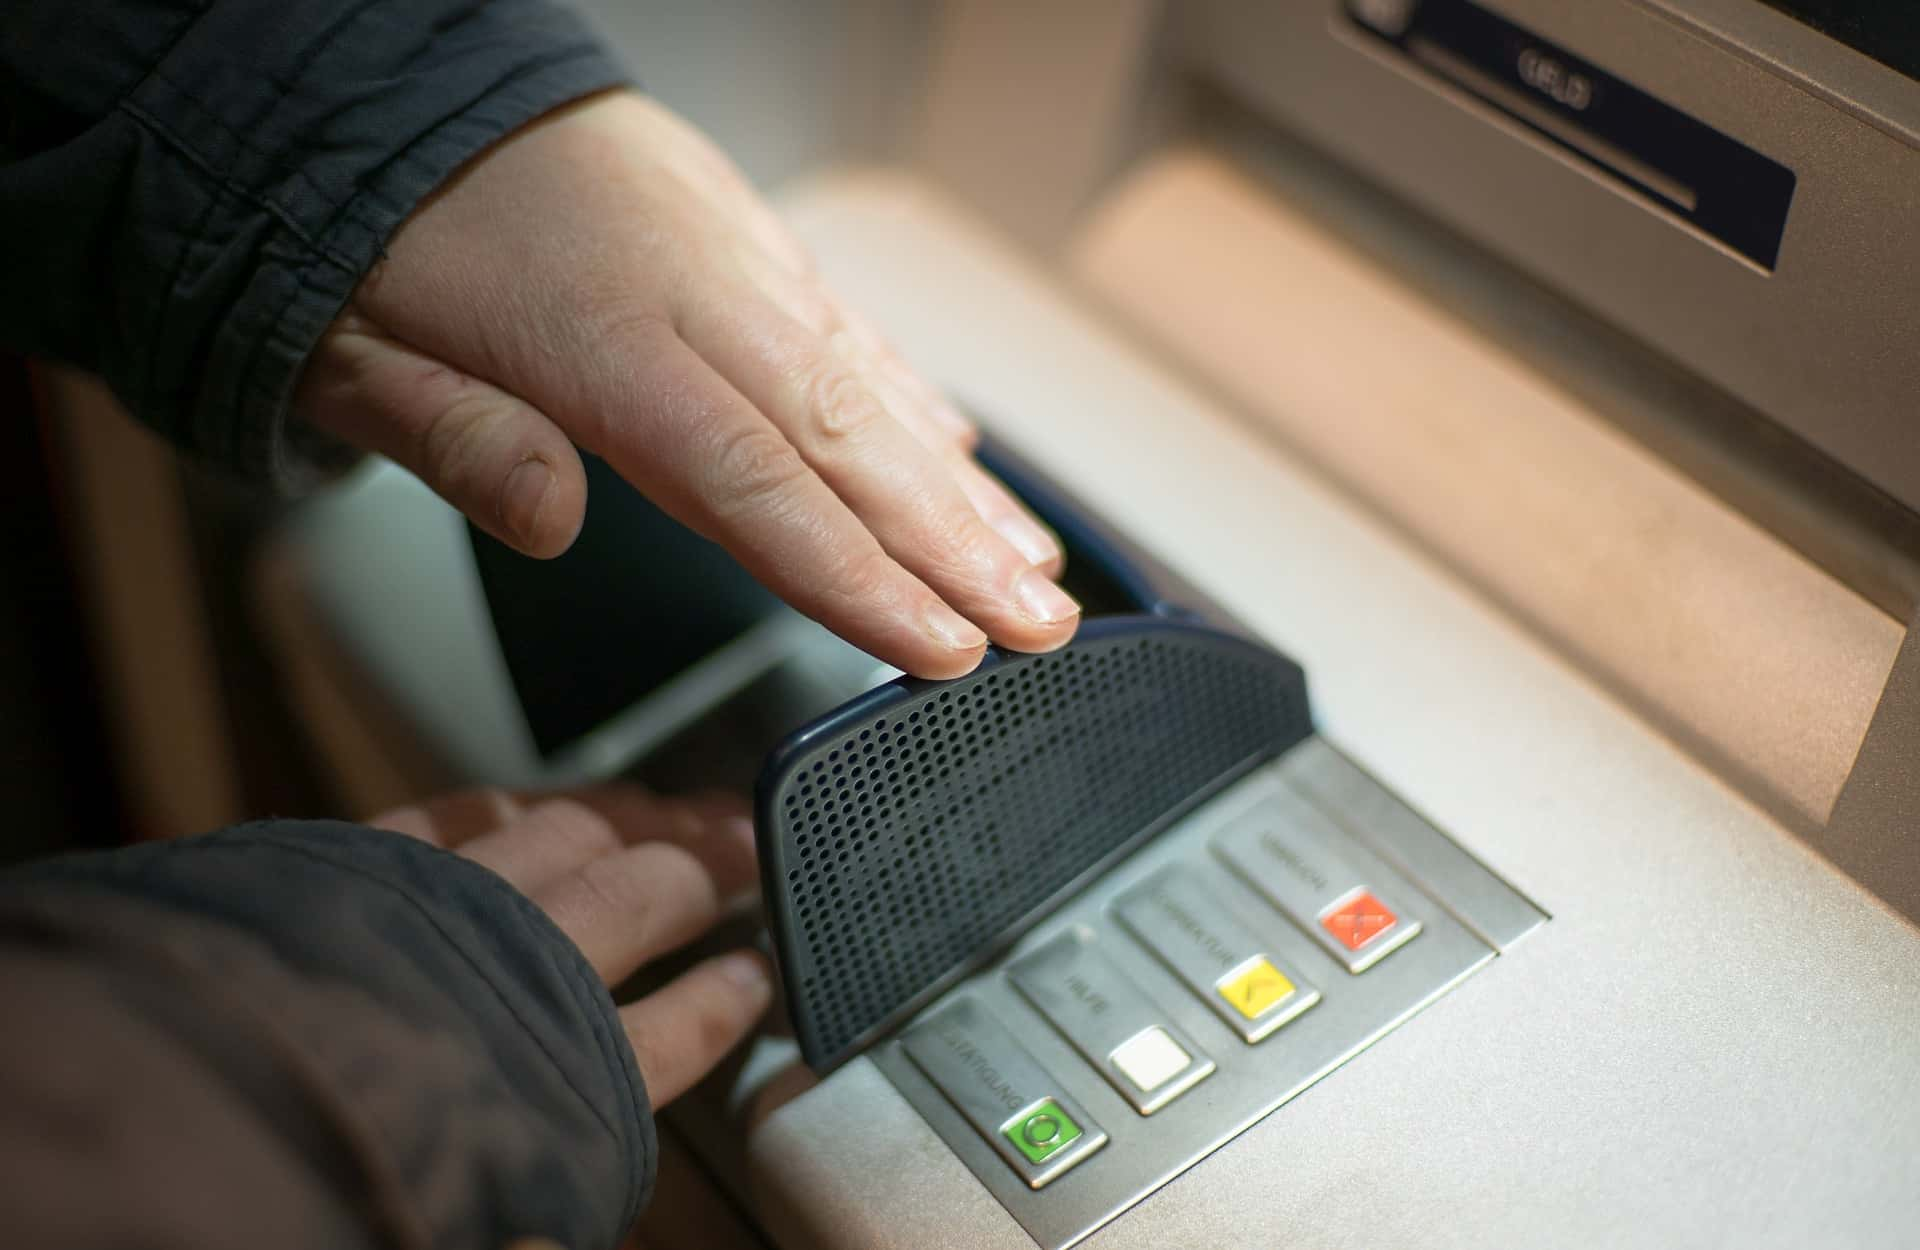 Skimming hardware mimics ATM's keyboard